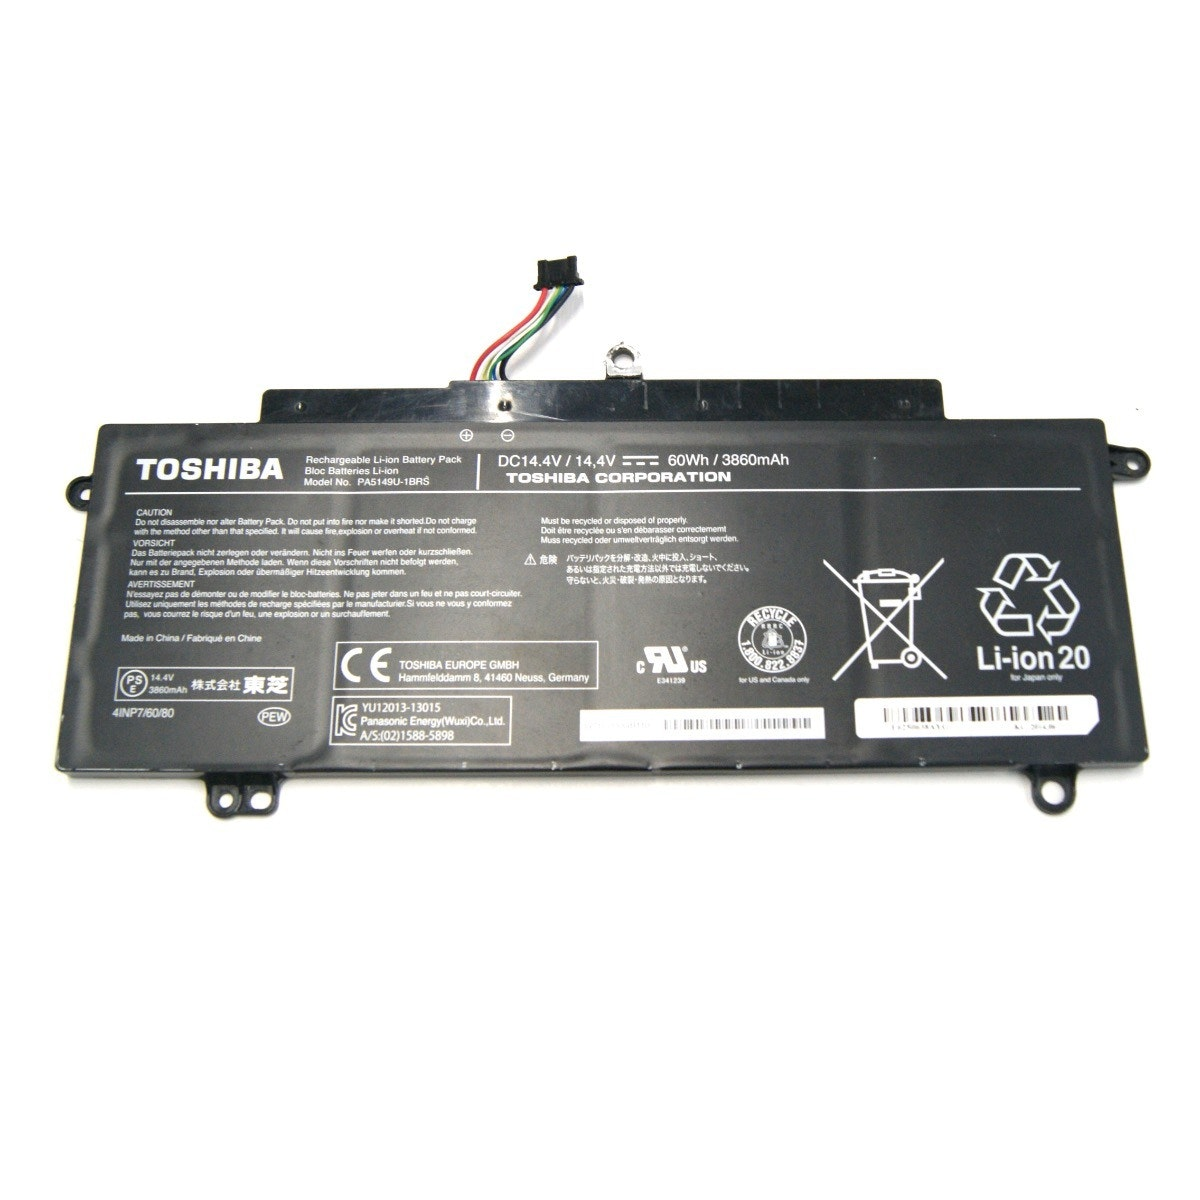 Toshiba 4-Cell Battery 14.4V 3860mAh